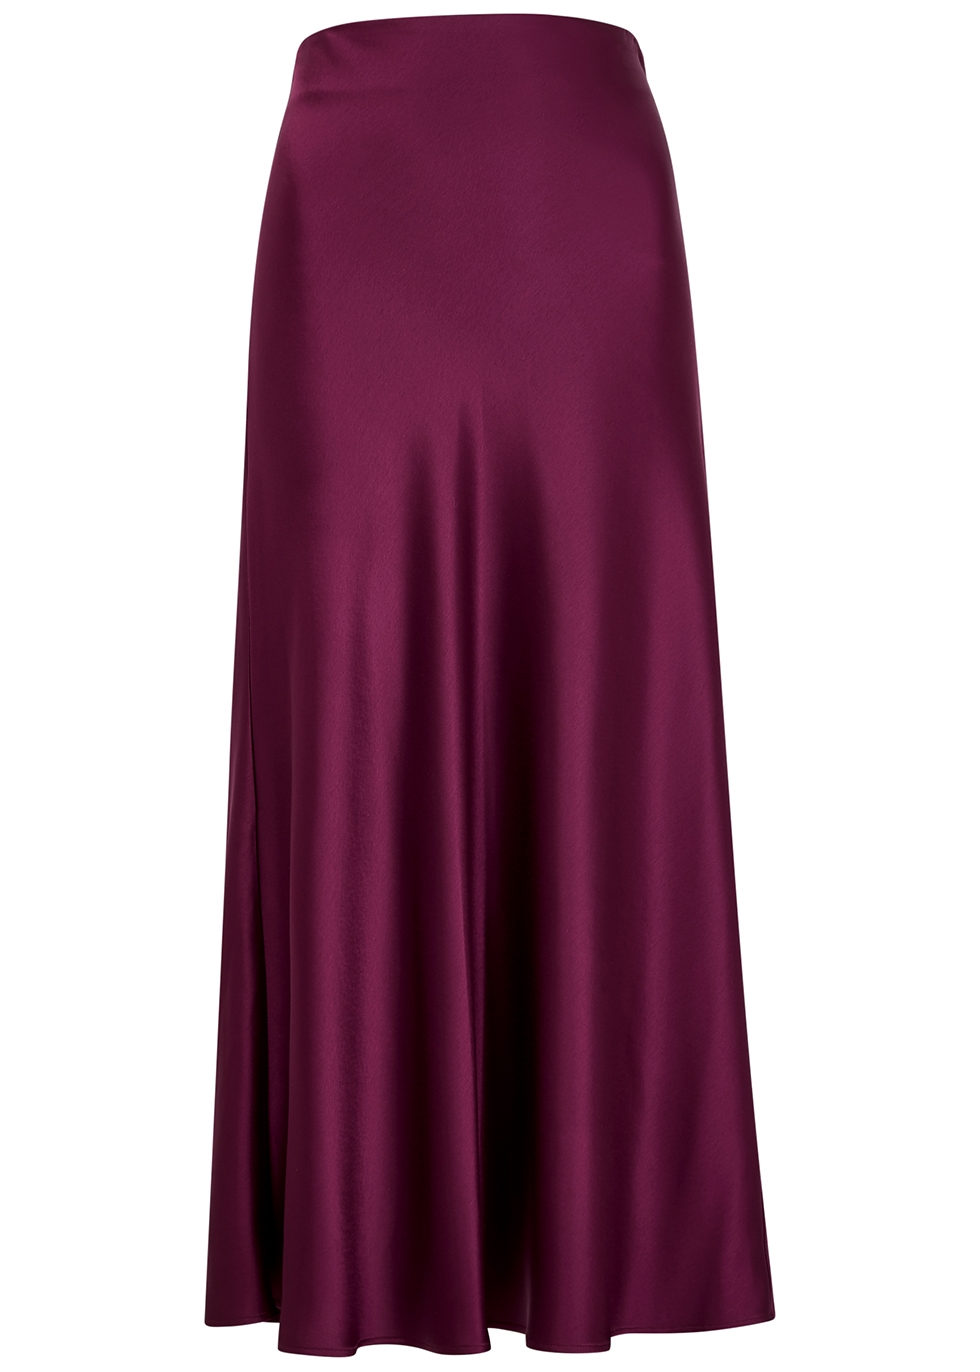 Valletta burgundy satin midi skirt